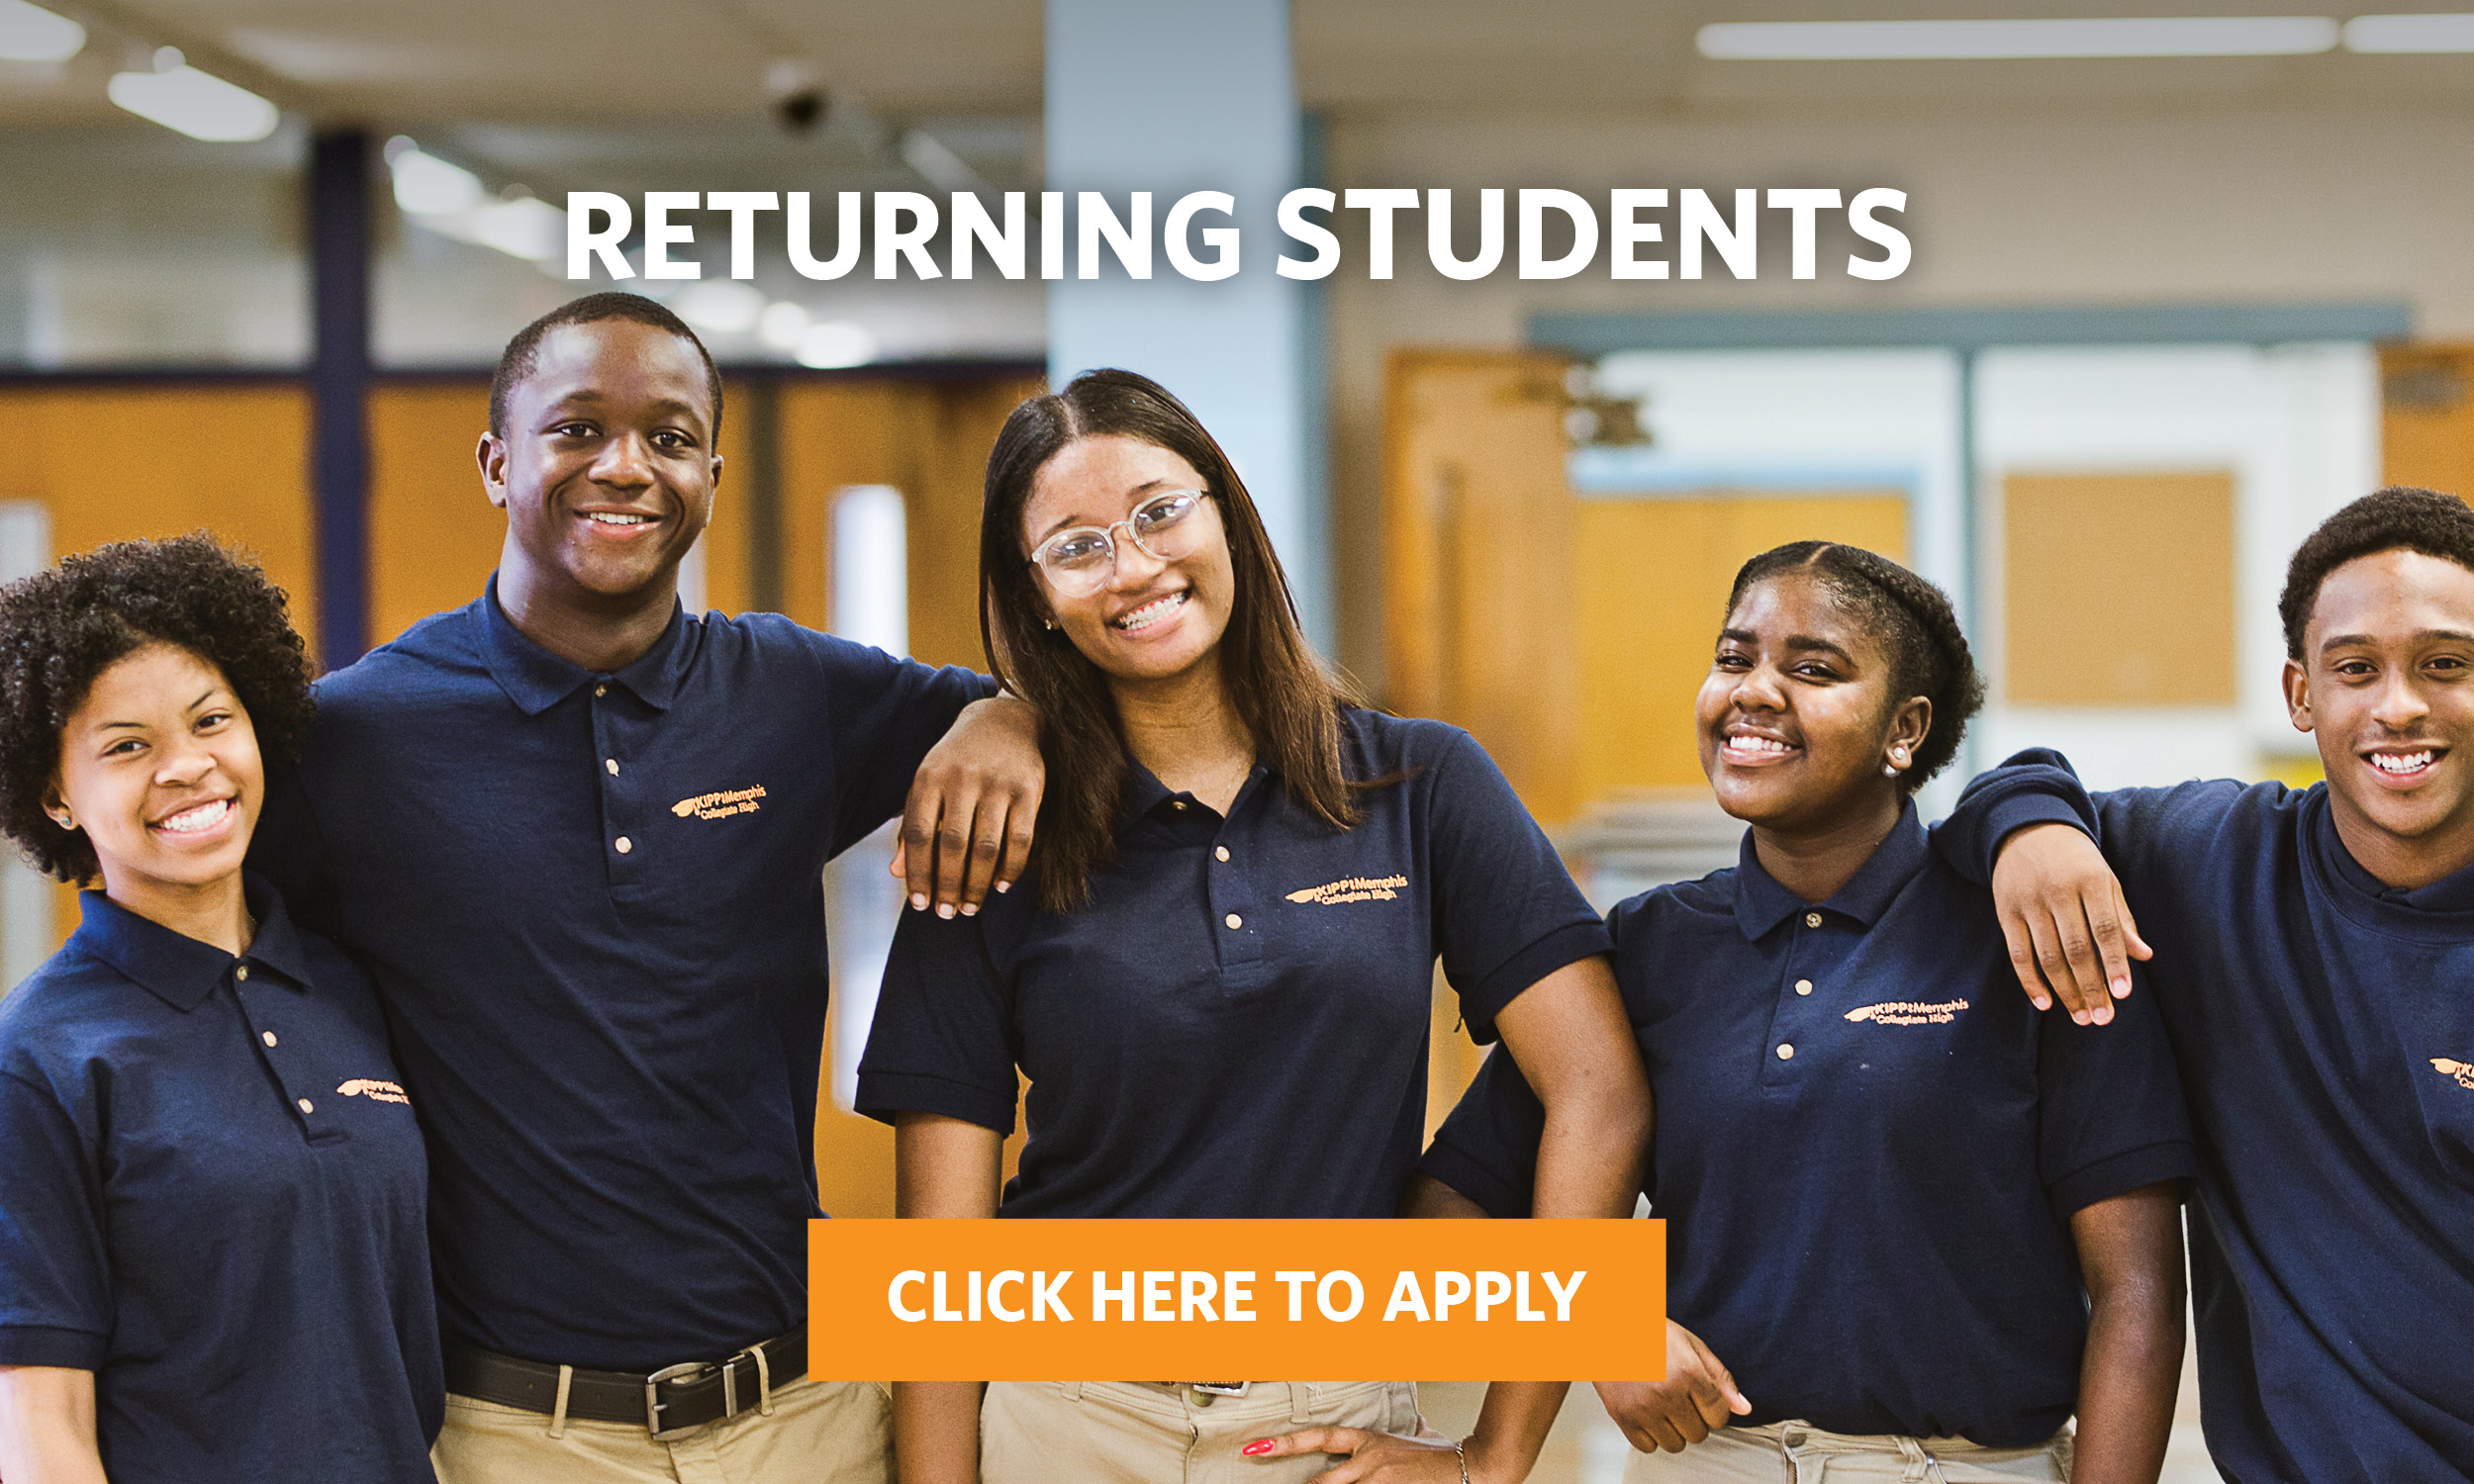 KIPP enroll now_2500x1500_Returning Students (2).jpg